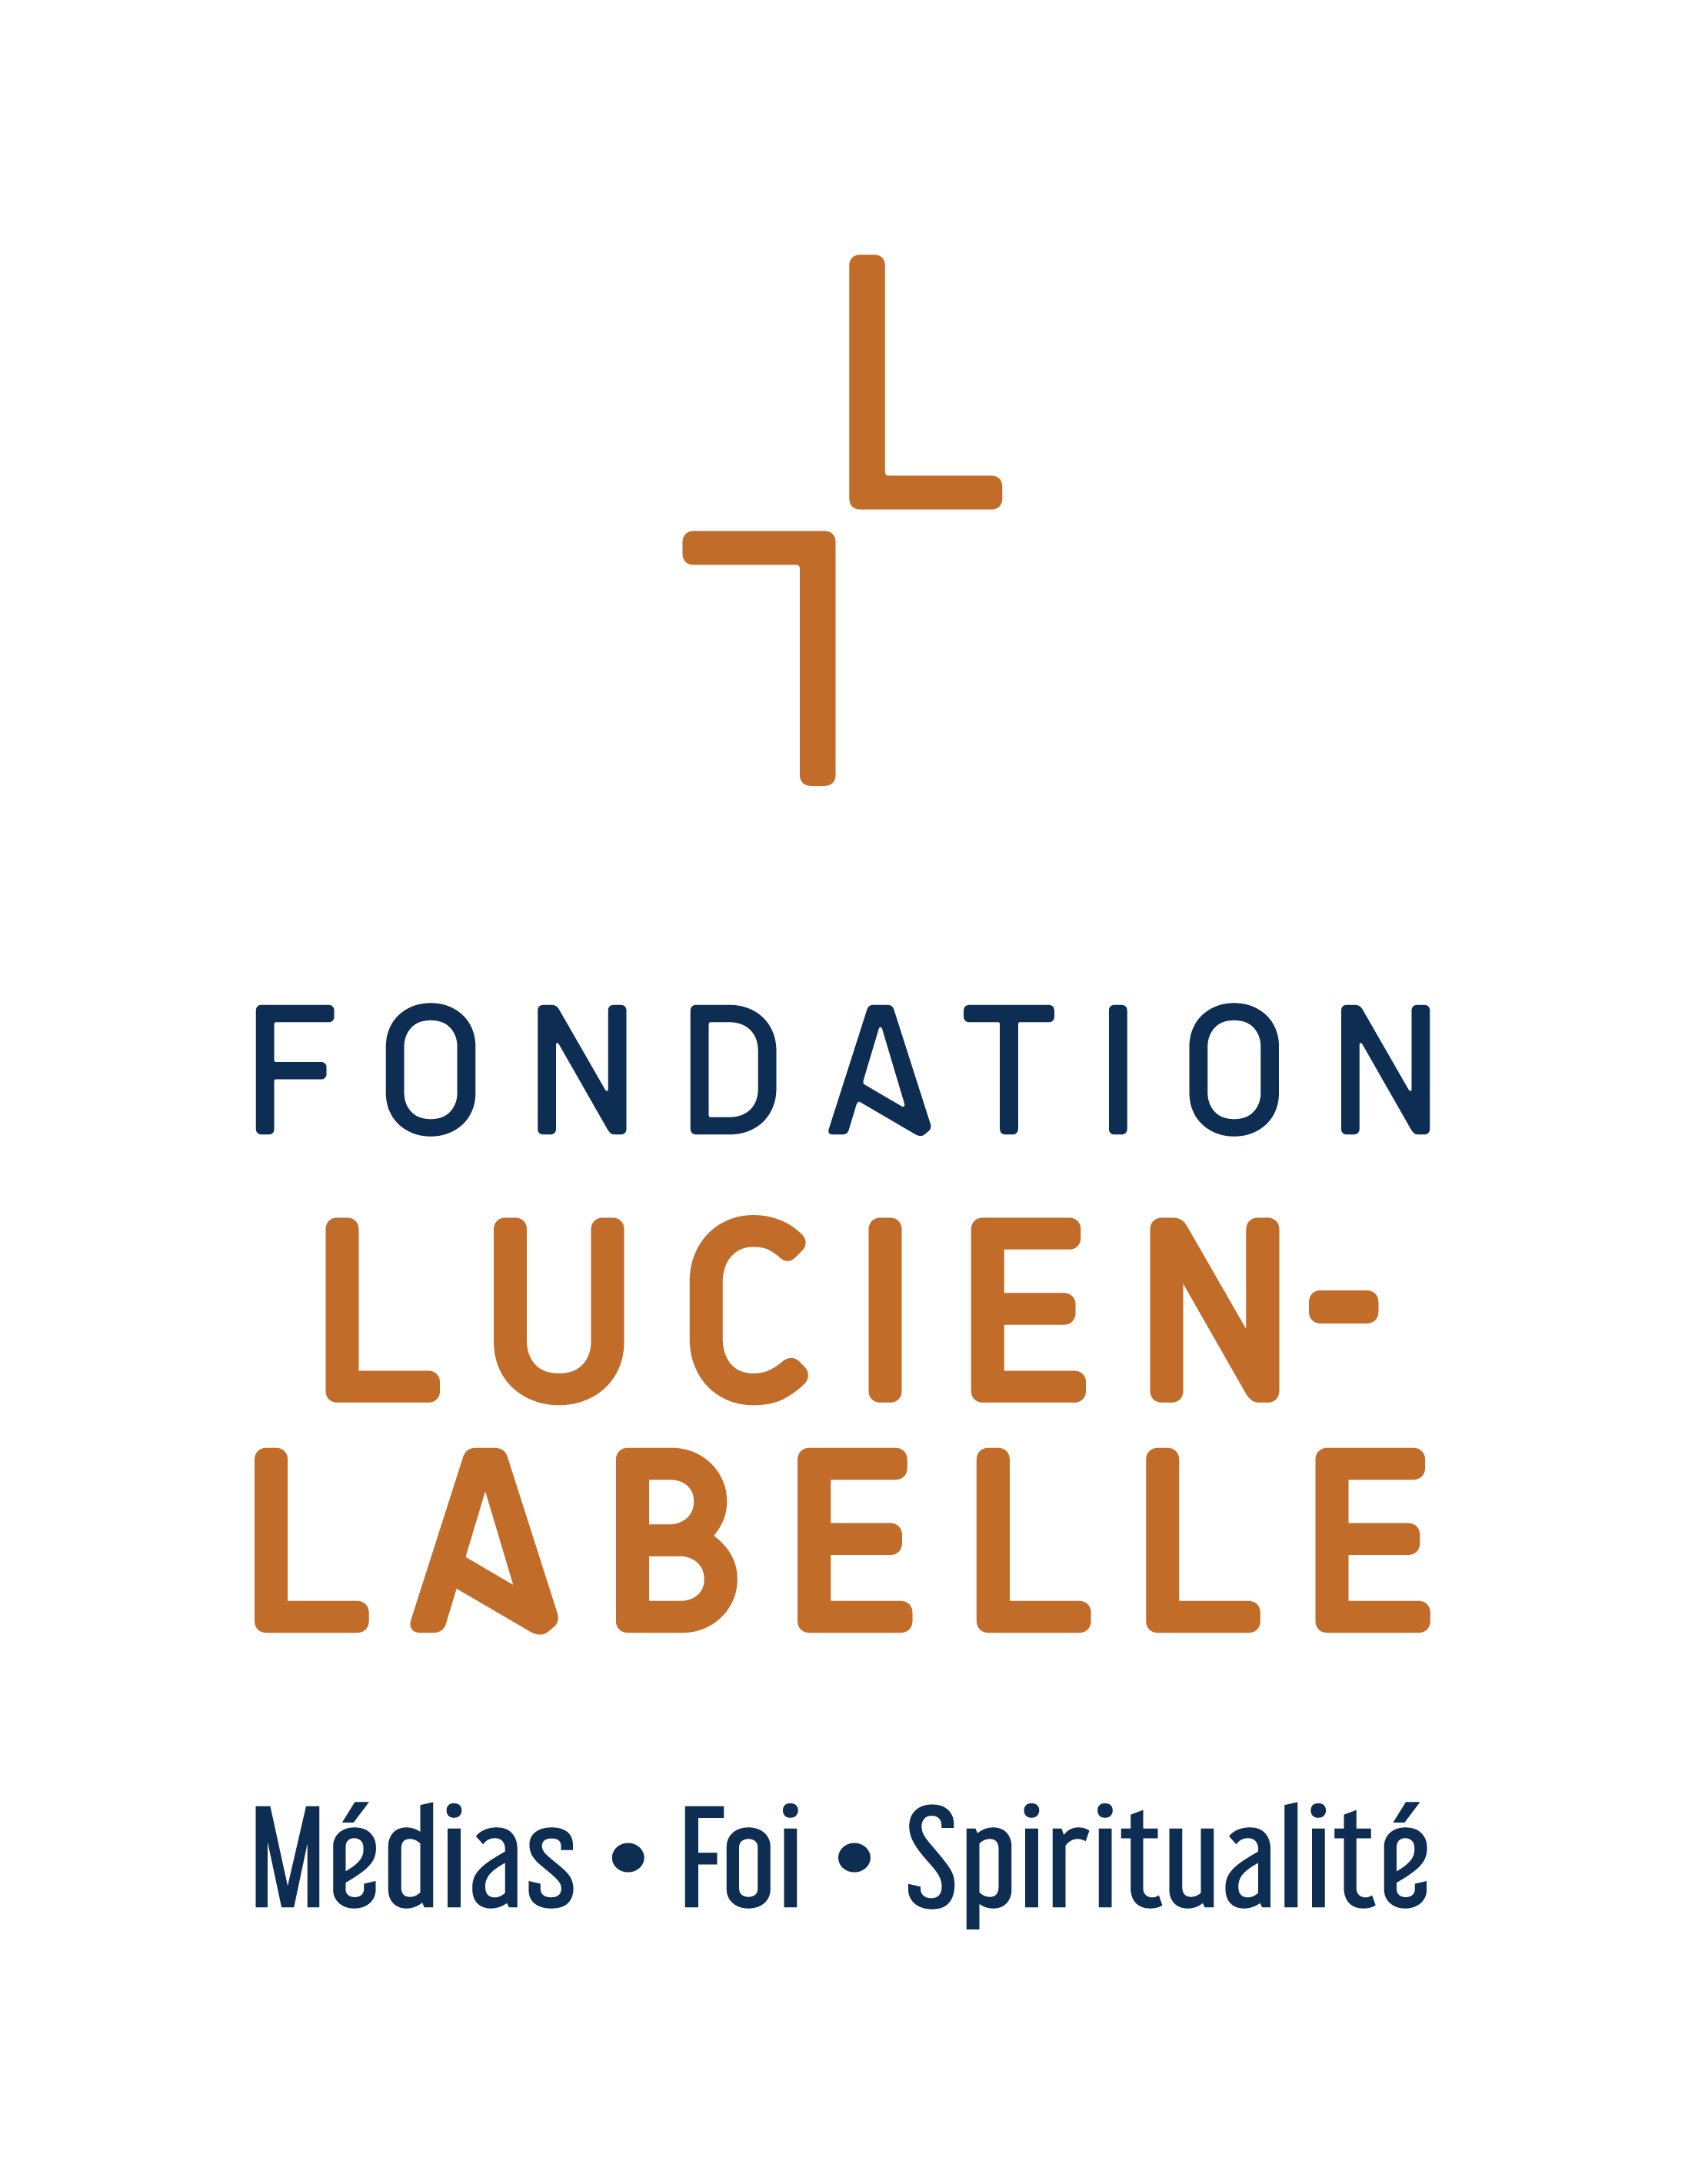 FONDATION LUCIEN-LABELLE